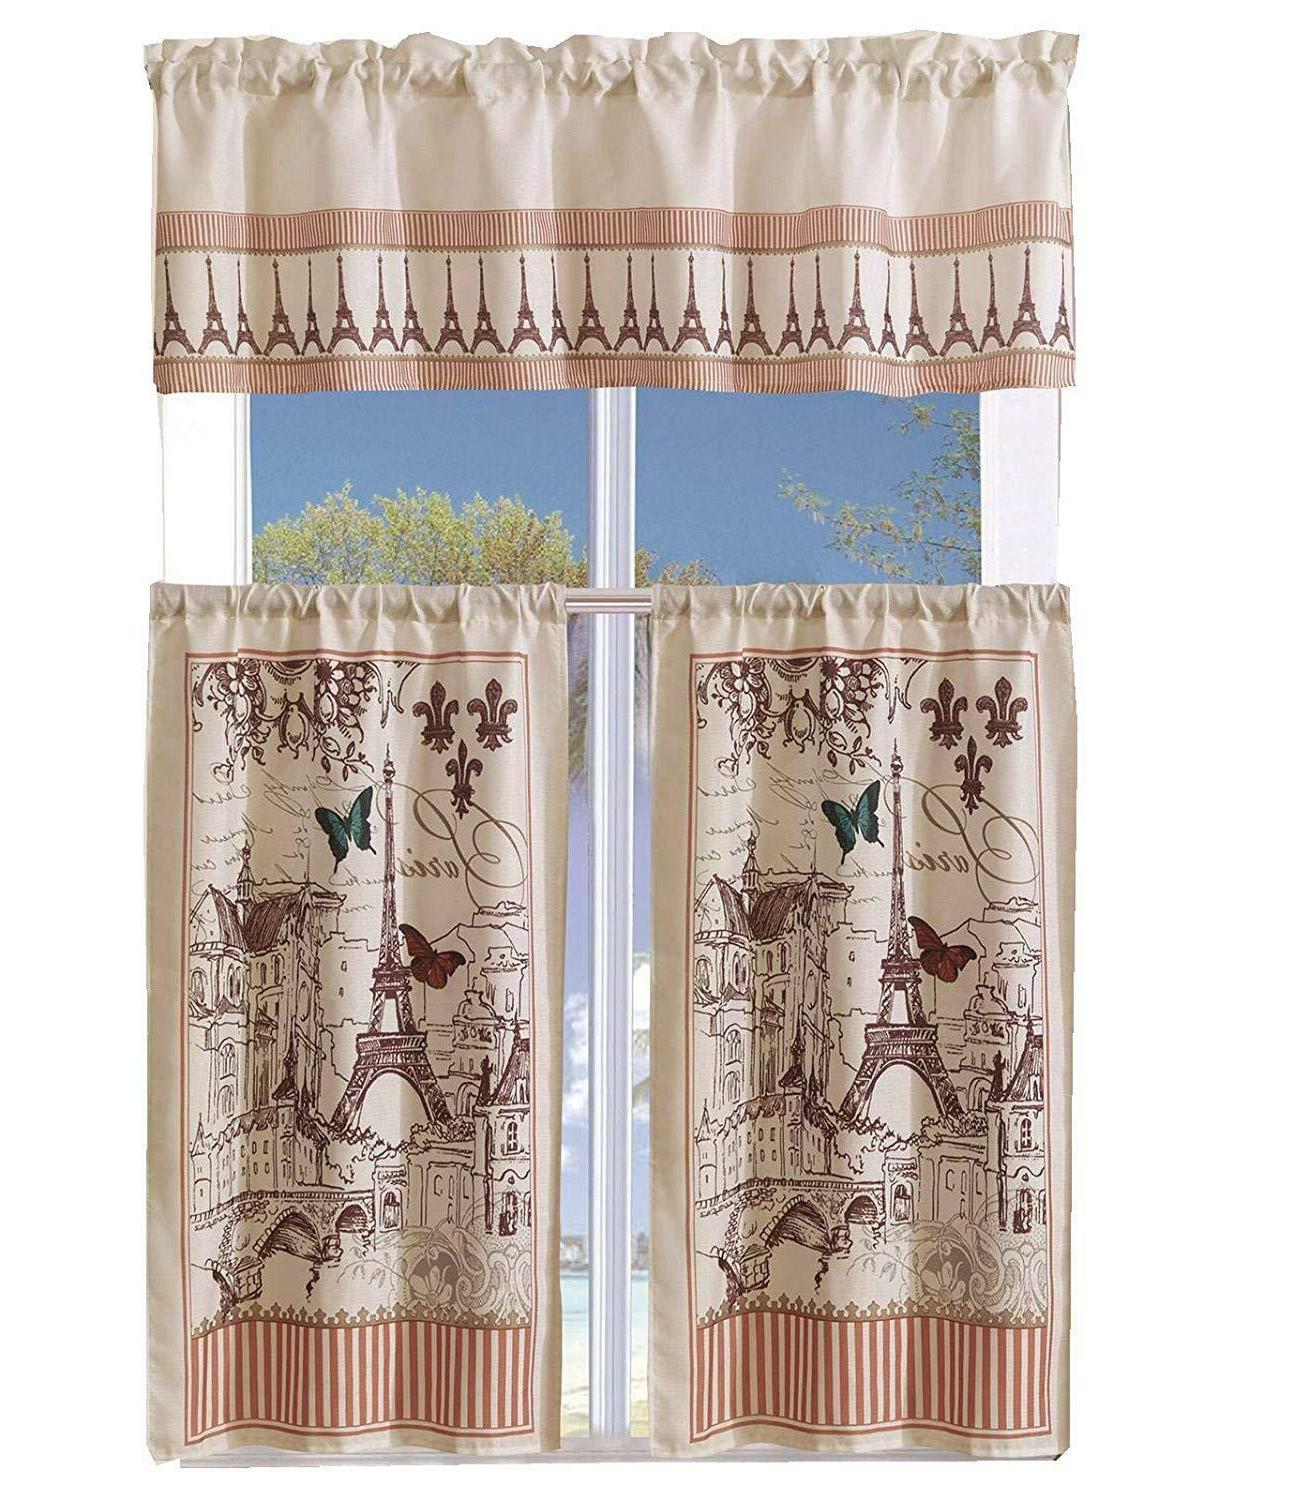 3 Piece With Window Curtain Set